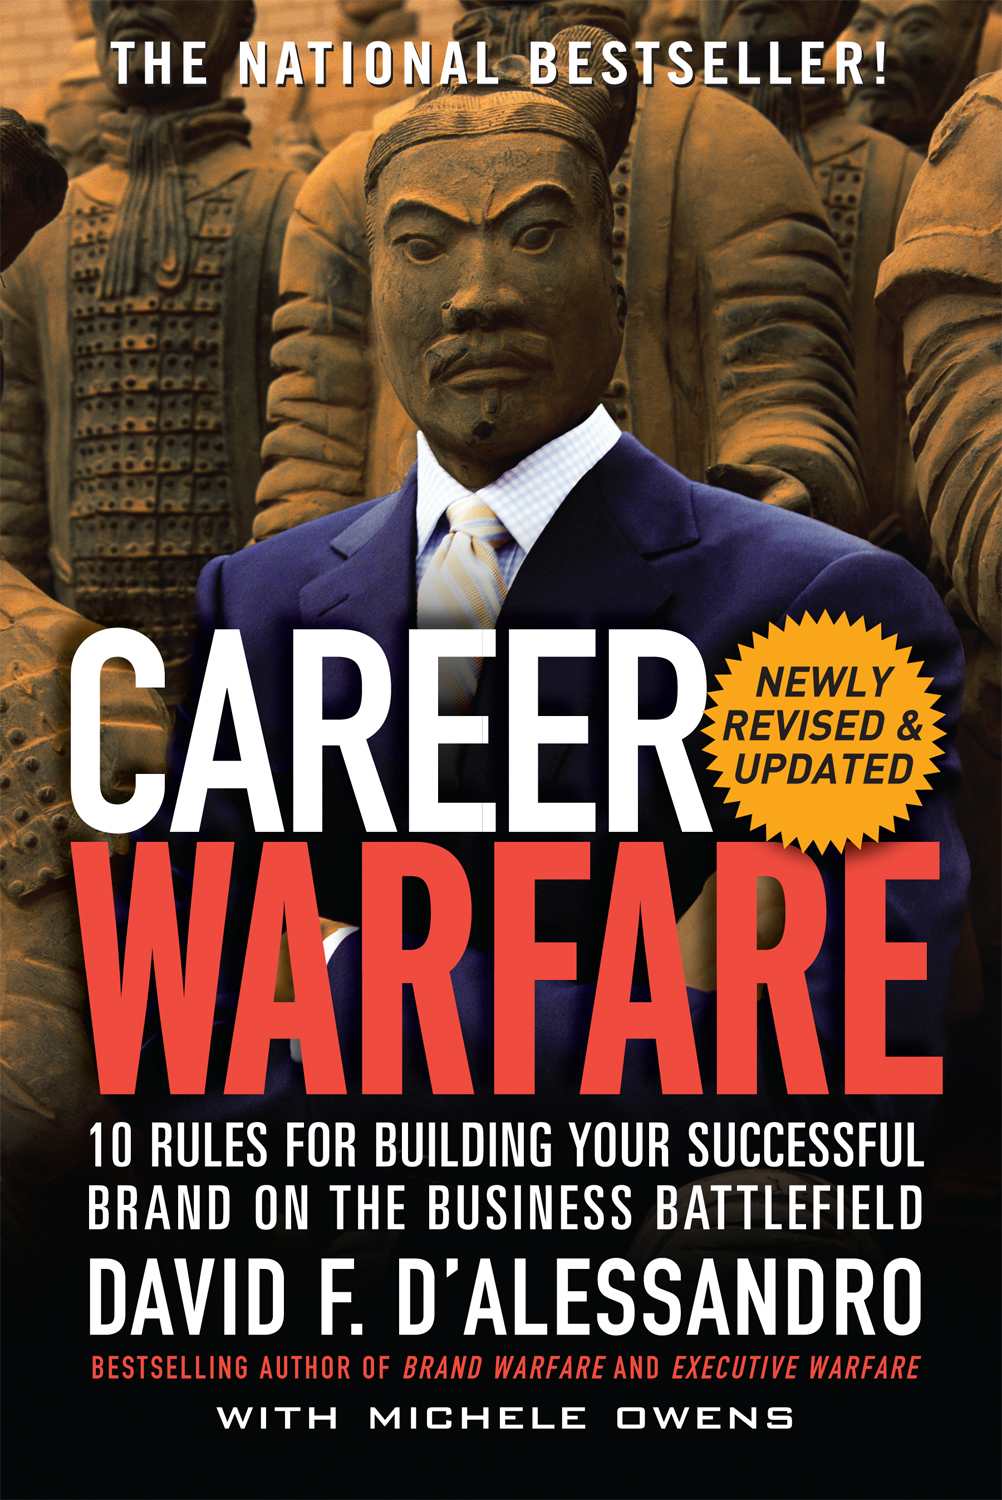 Download Ebook Career Warfare: 10 Rules for Building a Sucessful Personal Brand on the Business Battlefield (2nd ed.) by David D'Alessandro Pdf